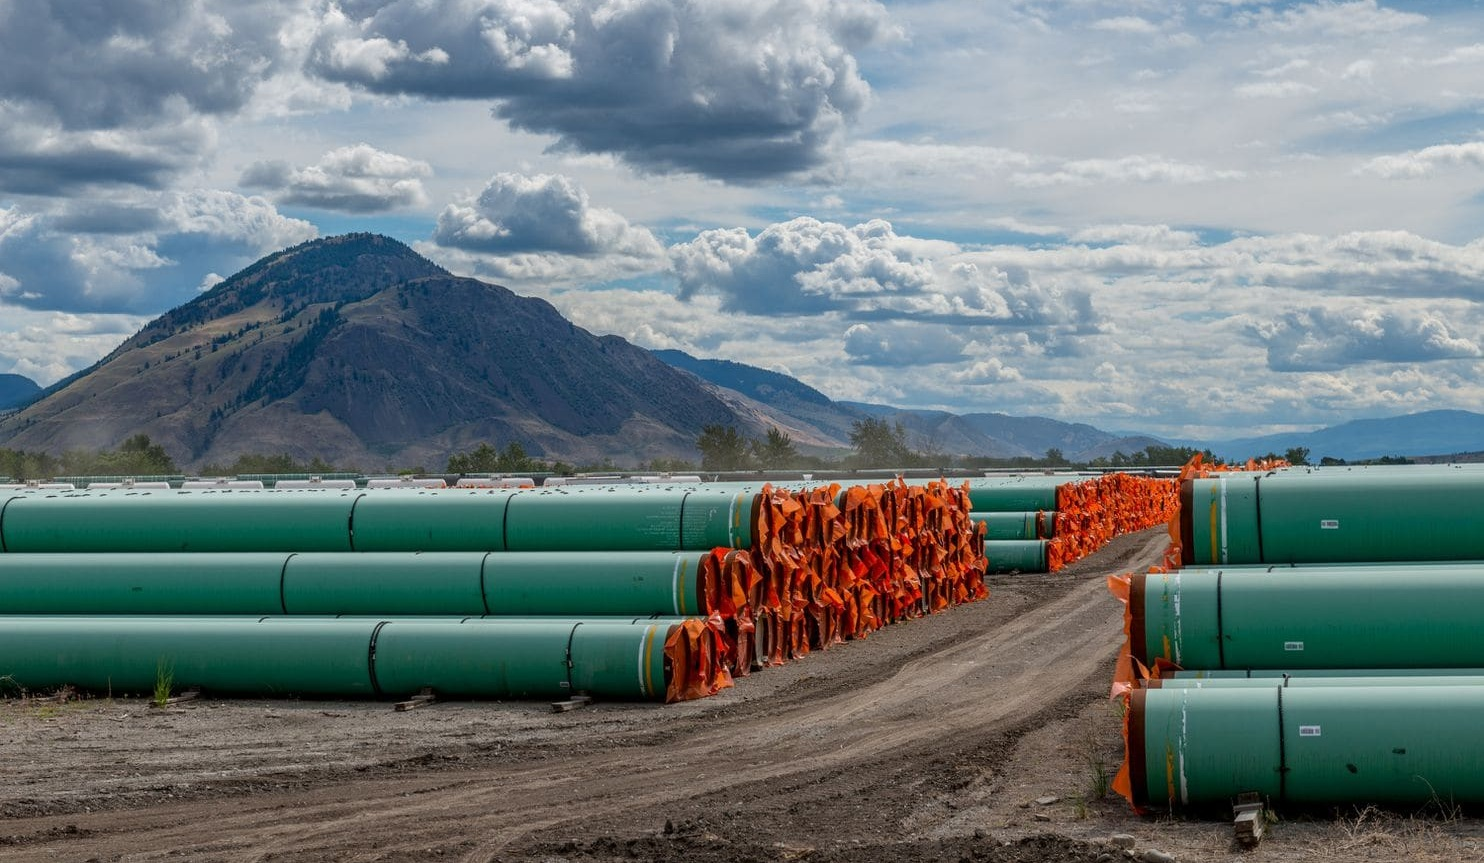 Steel pipes to be used in the construction of the Trans Mountain Expansion Project in Kamloops, British Columbia (Dennis Owen/Reuters).